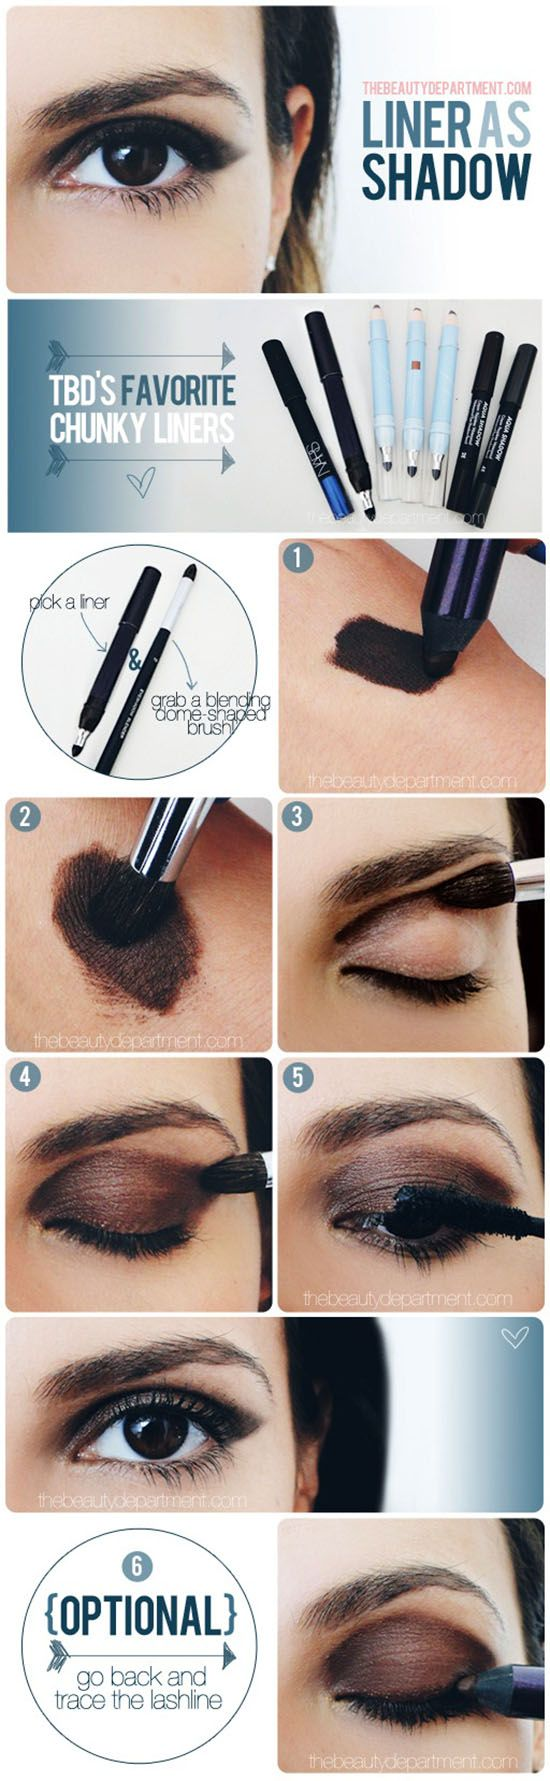 How to Make Smokey Eyes with Just a Liner